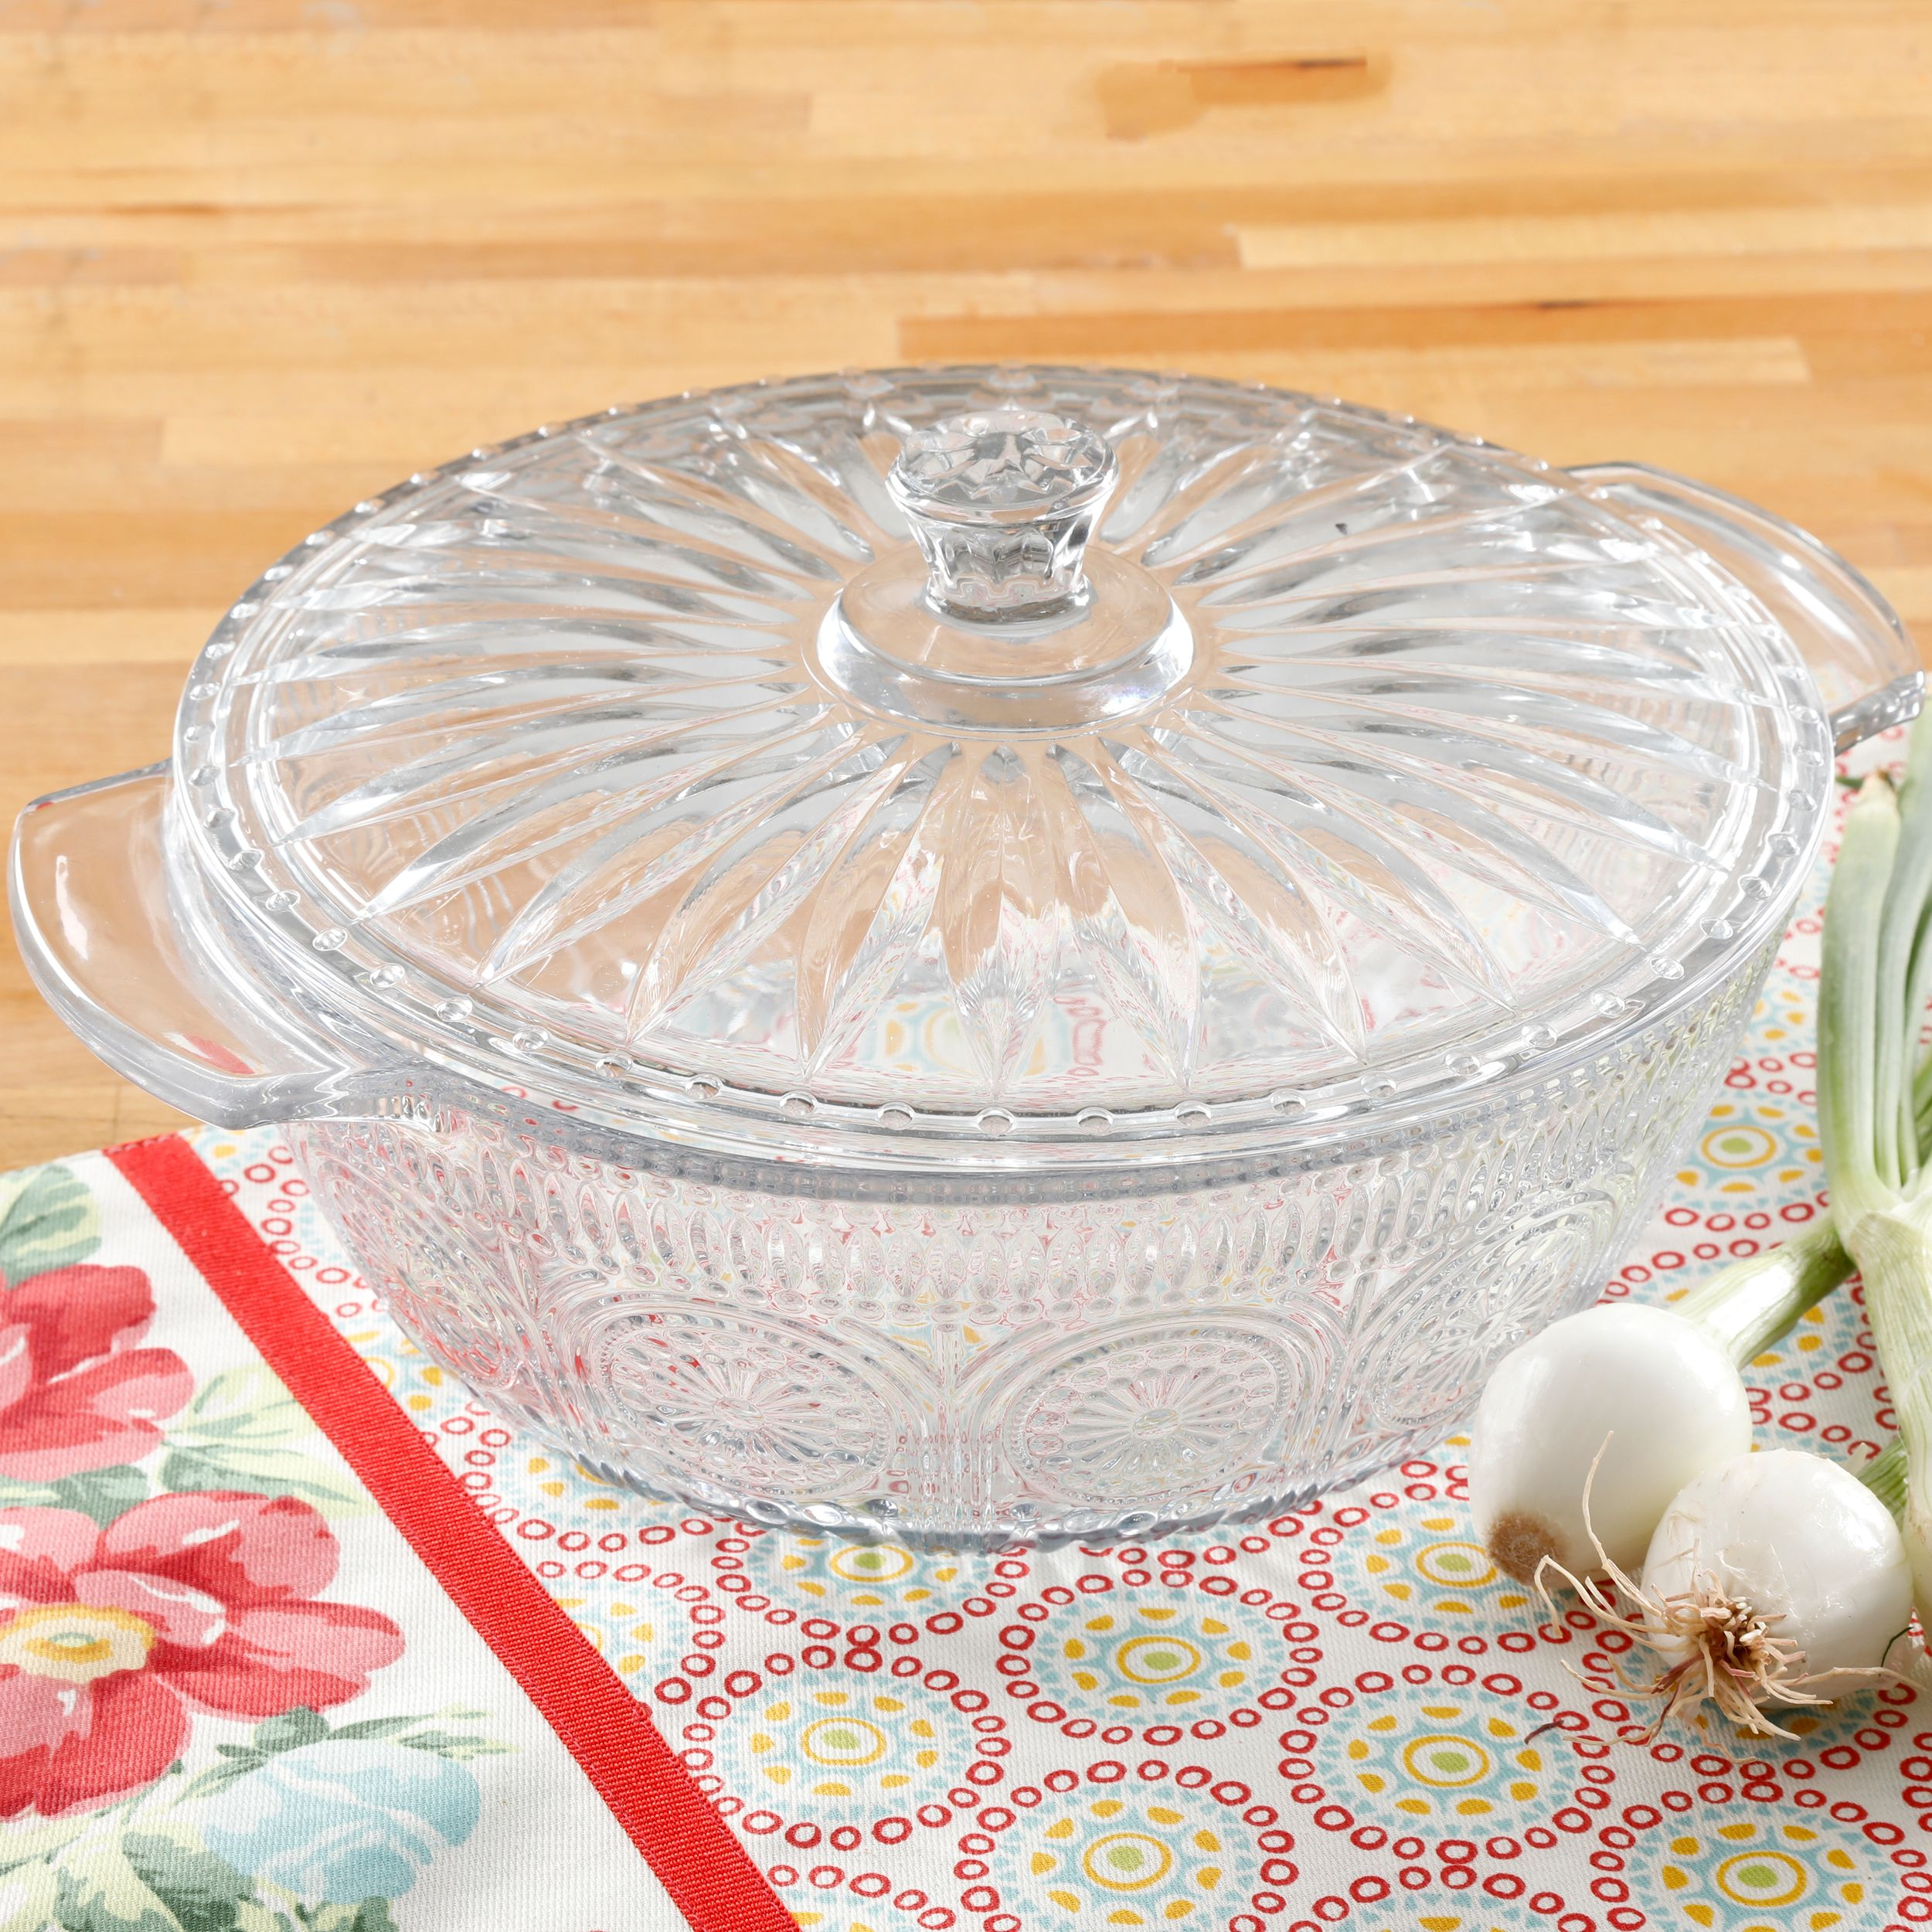 The Pioneer Woman Adeline 2.5 Quart Glass Casserole with Lid, 1 Each